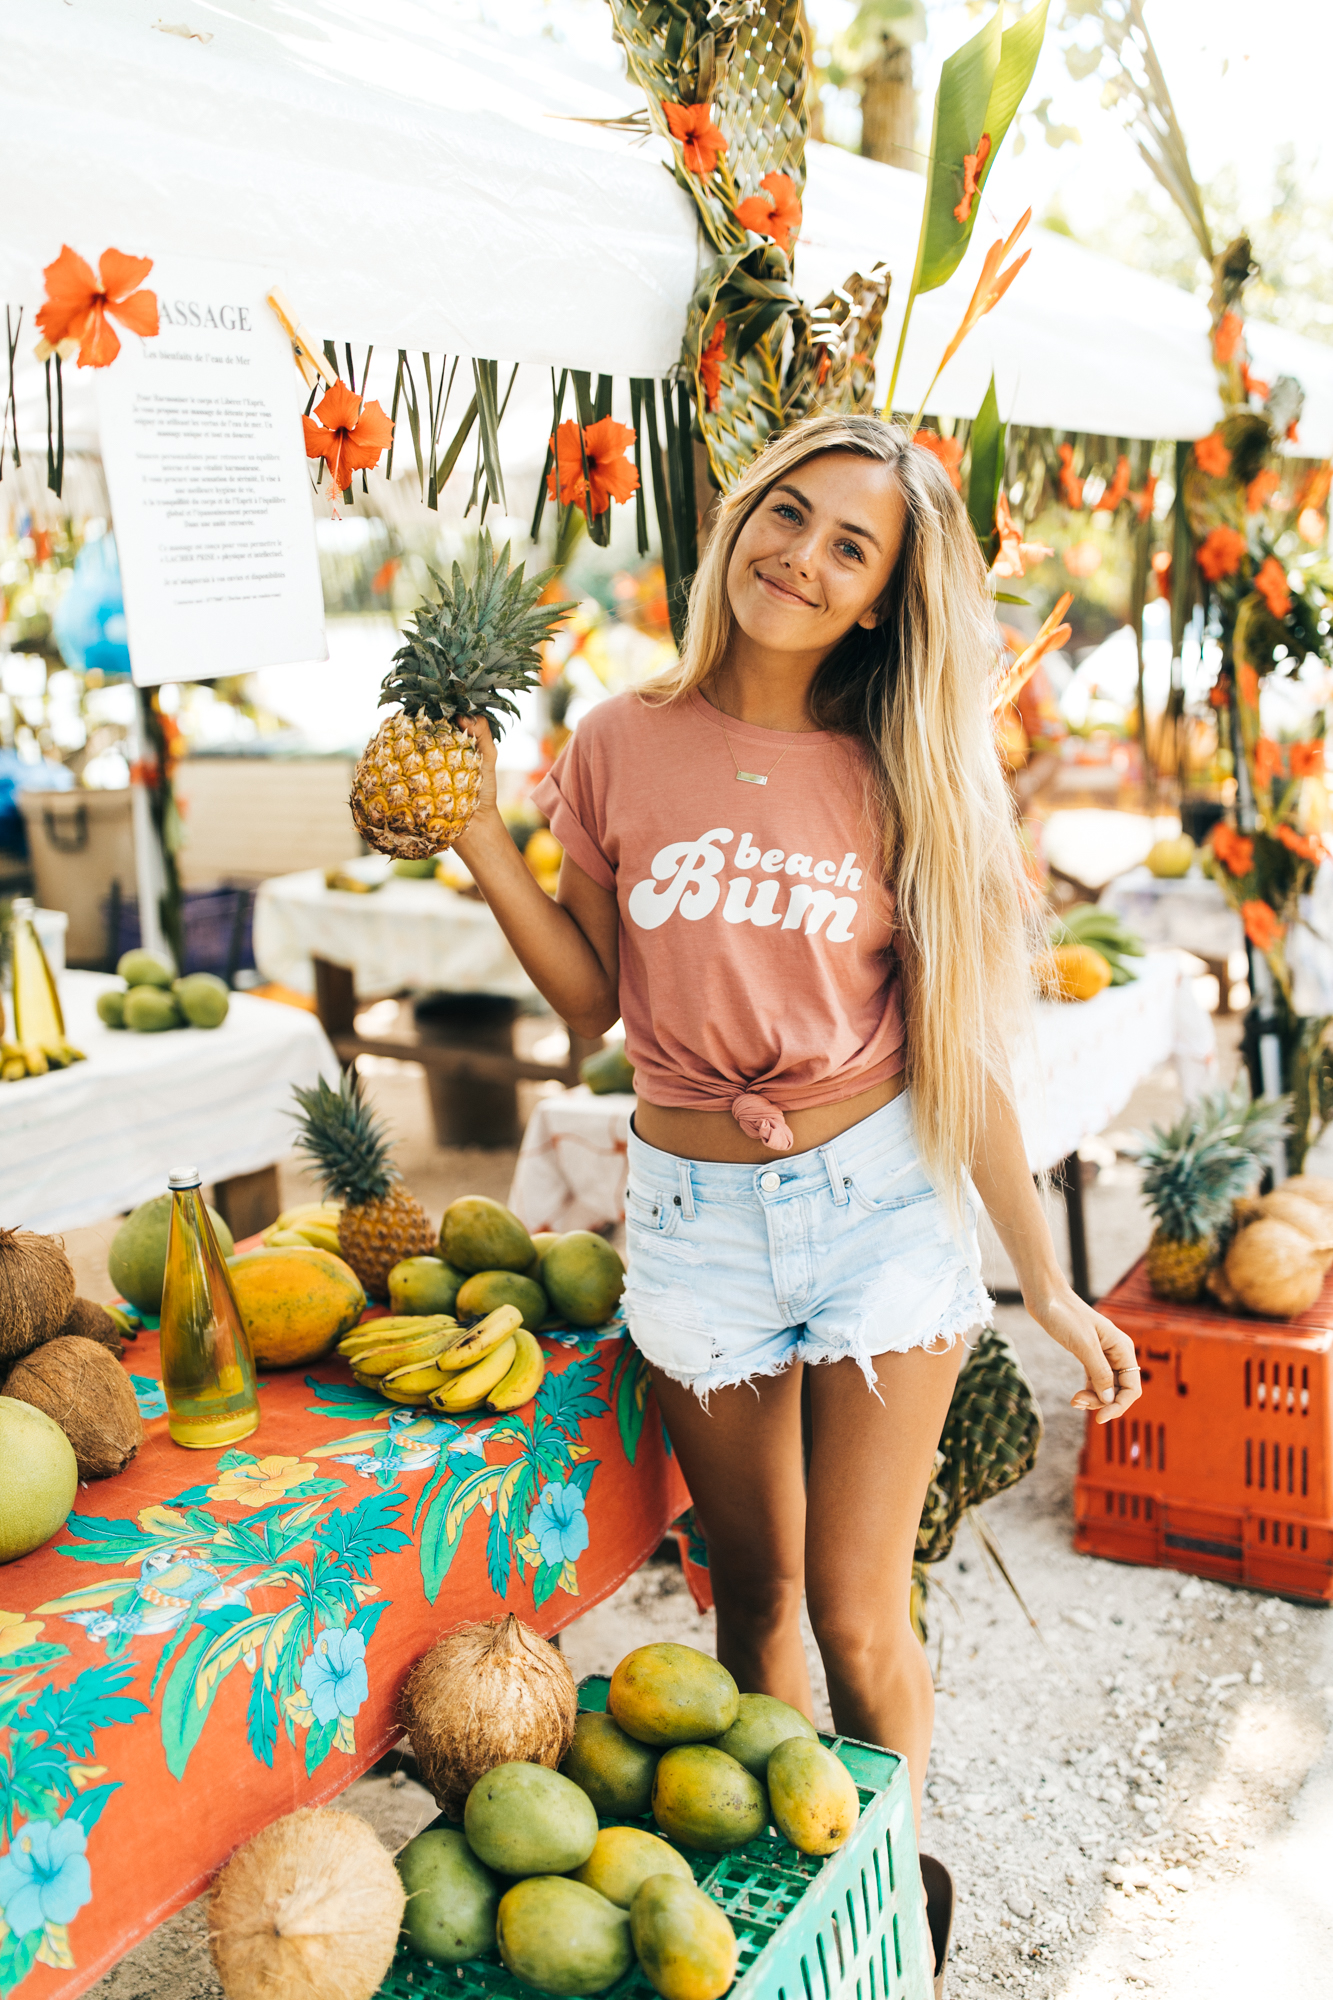 The cutest fruit stand I've ever seen!